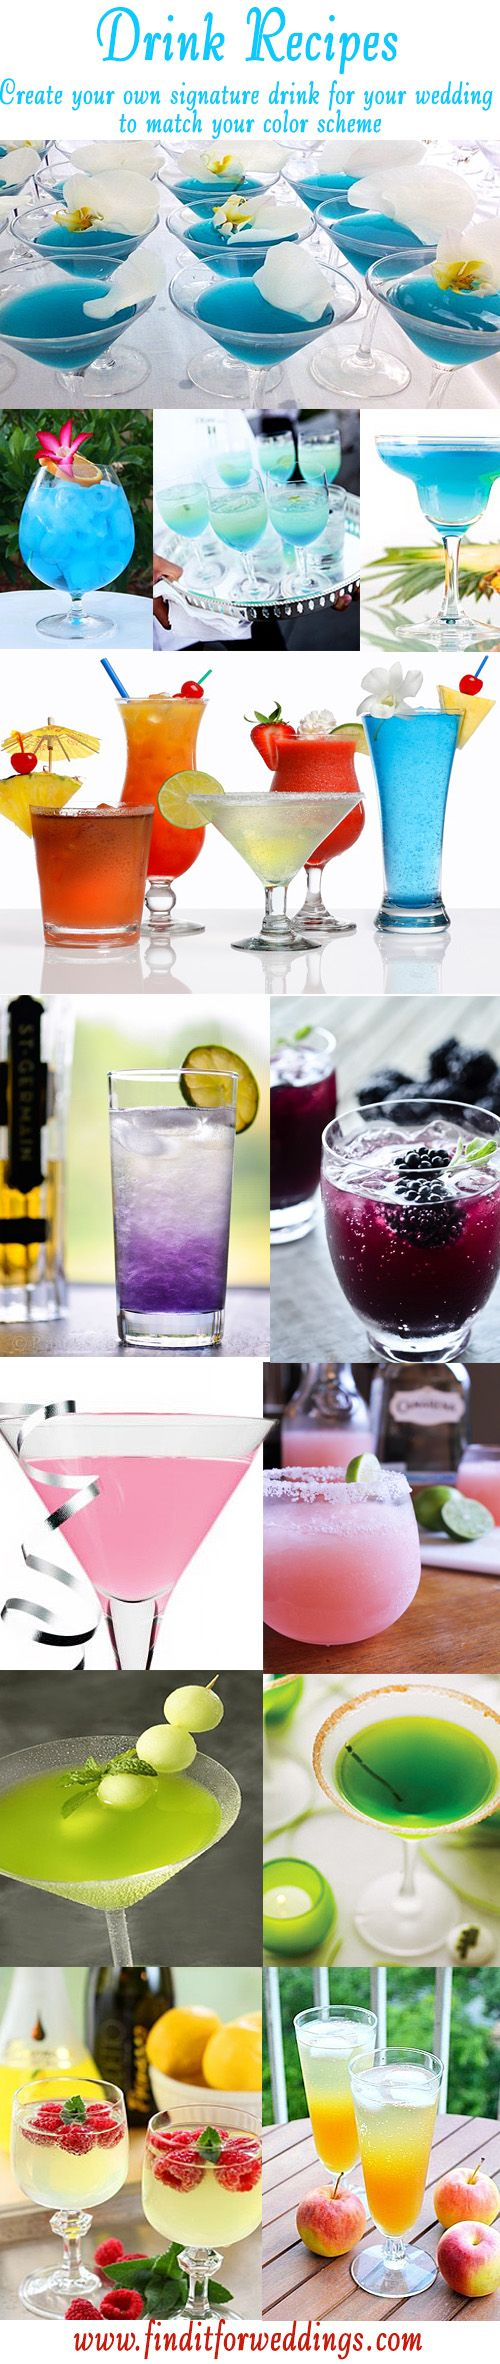 Drink Recipes non alcoholic drink recipes cocktails